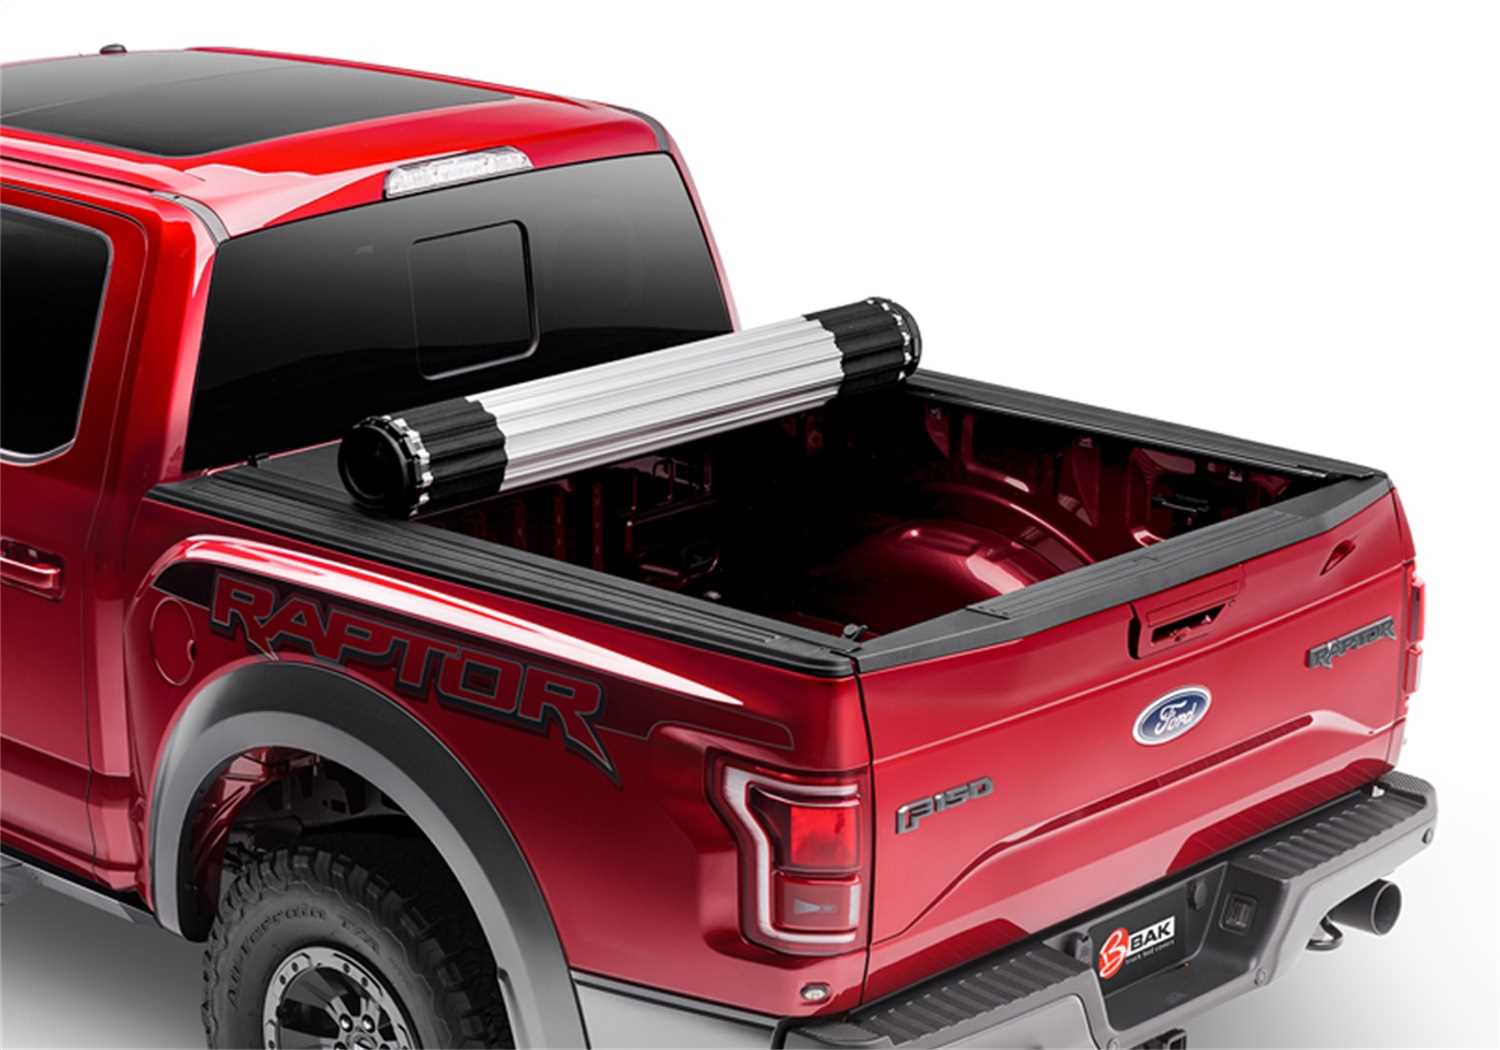 79409T Bak Industries Revolver X4 Hard Rolling Truck Bed Cover